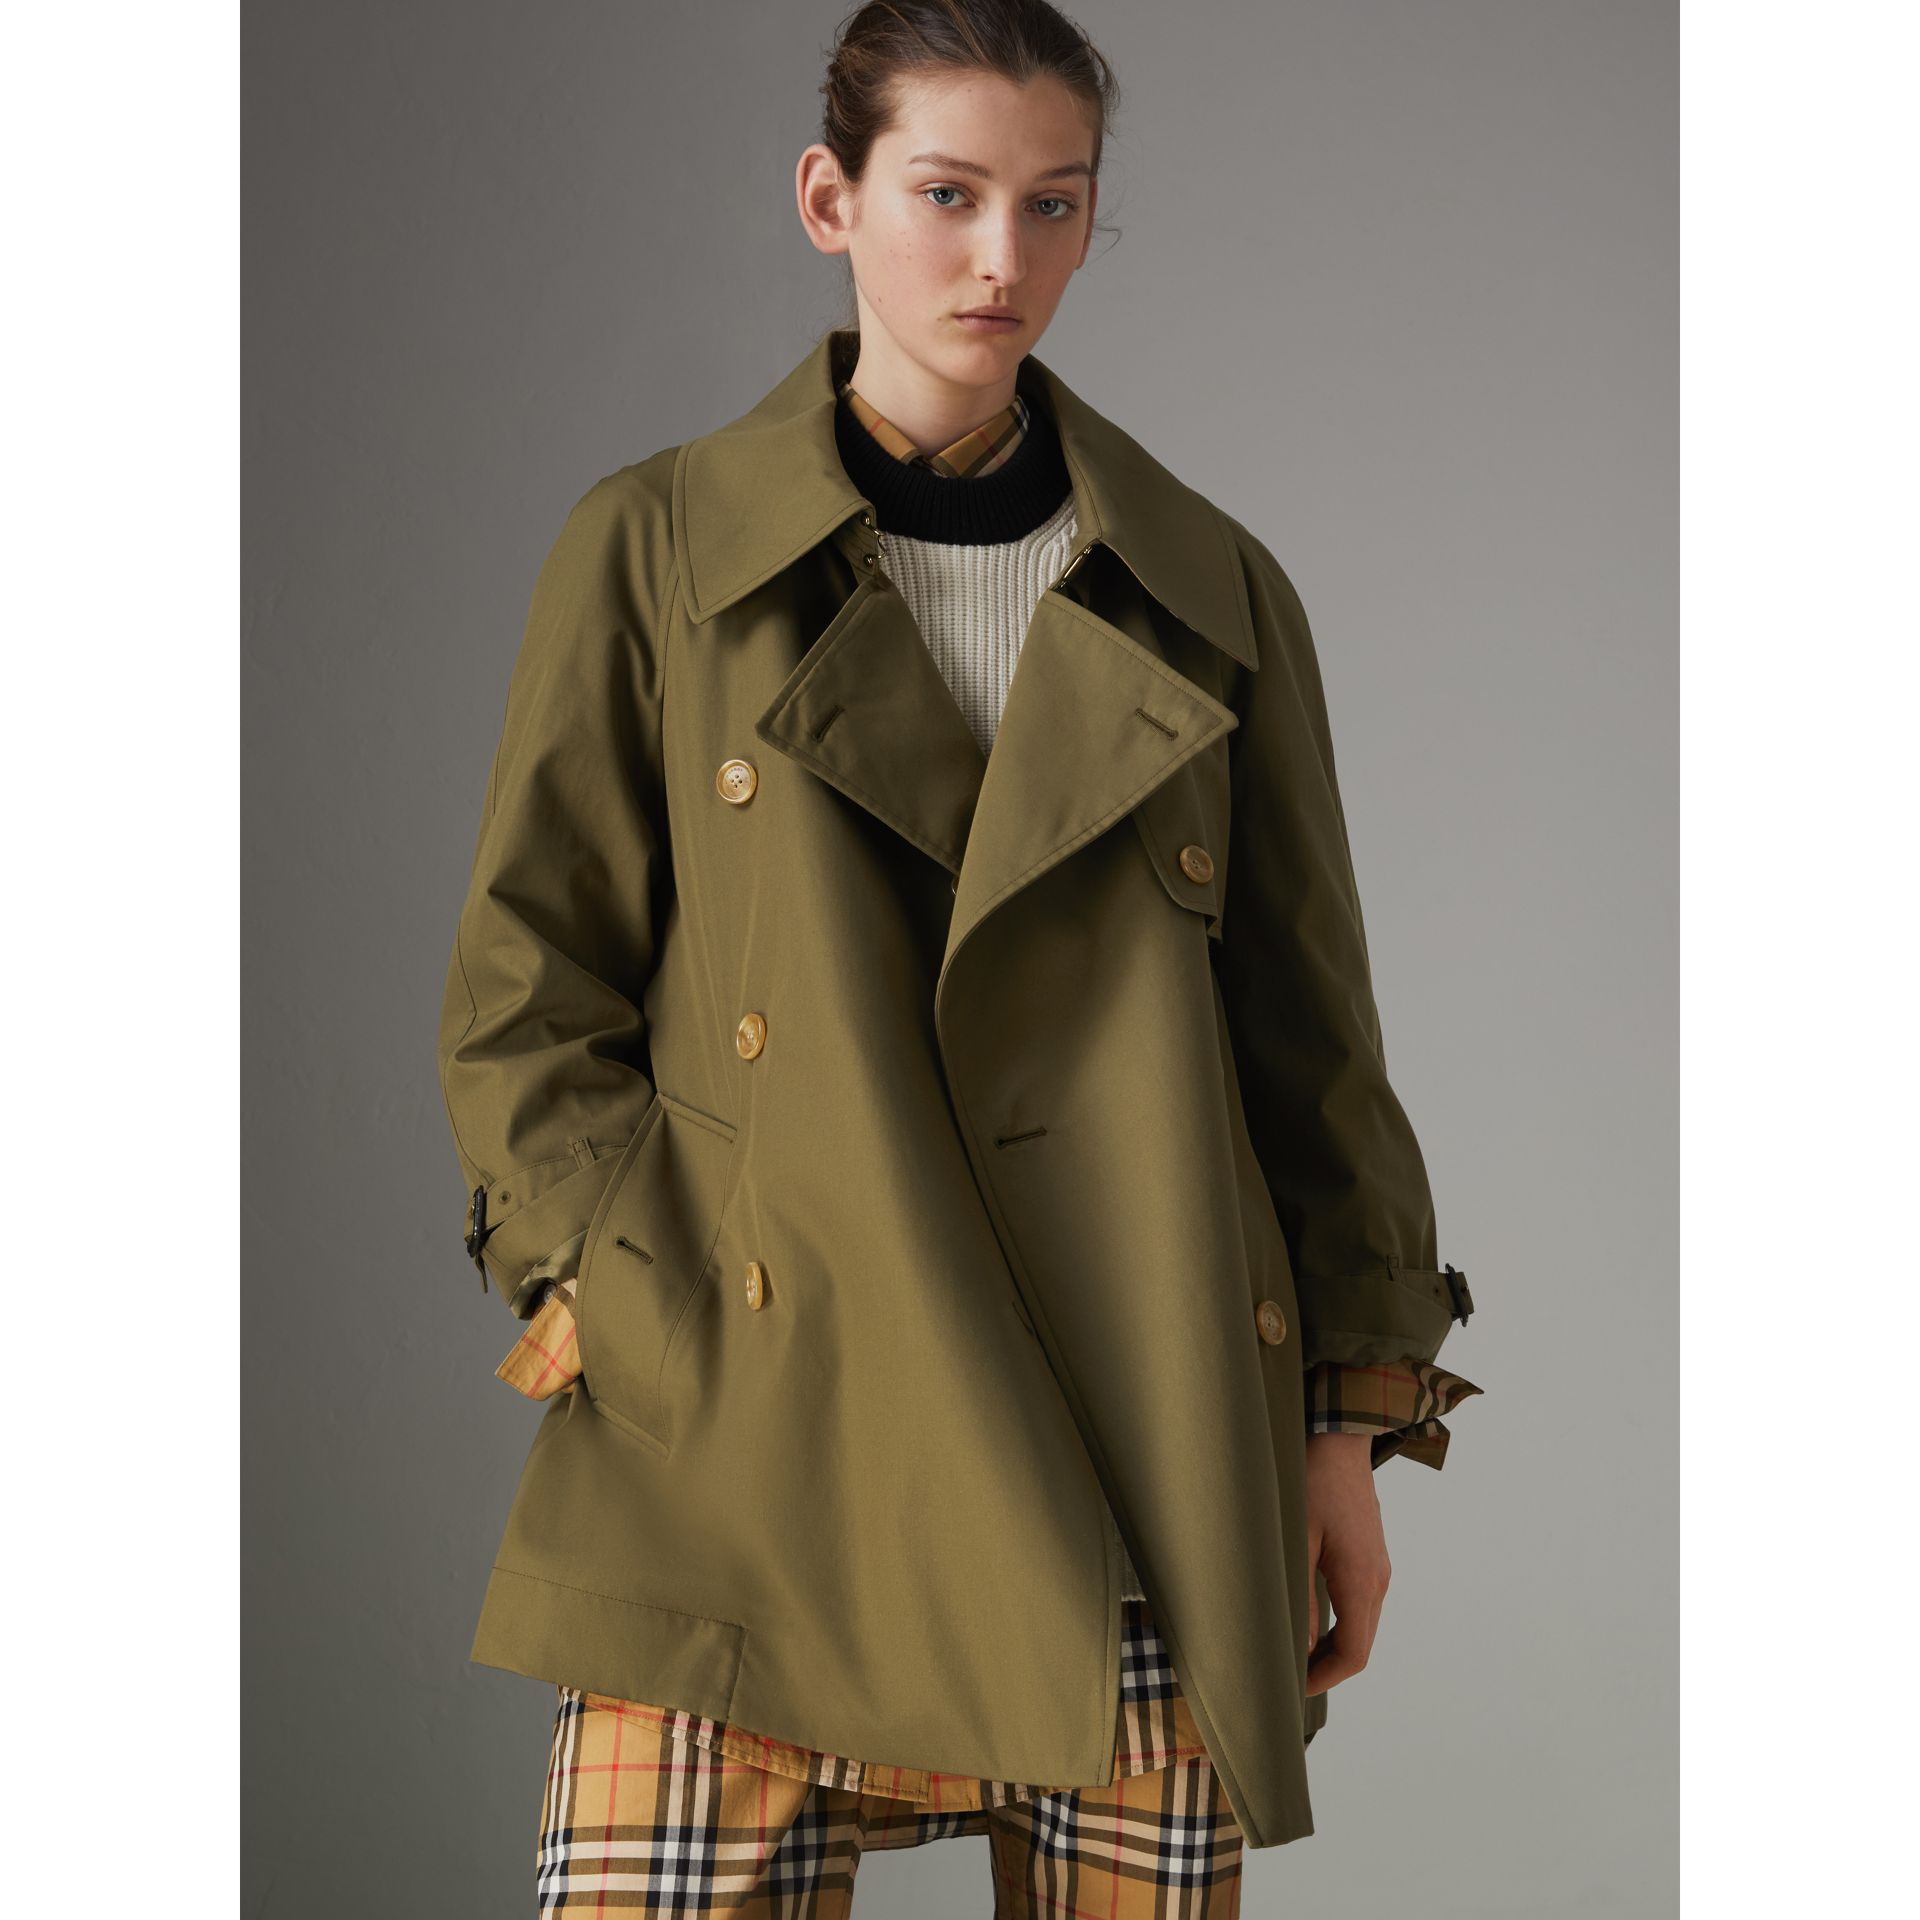 Exaggerated Collar Cotton Gabardine Trench Coat in Military Olive - Women | Burberry Australia - gallery image 5